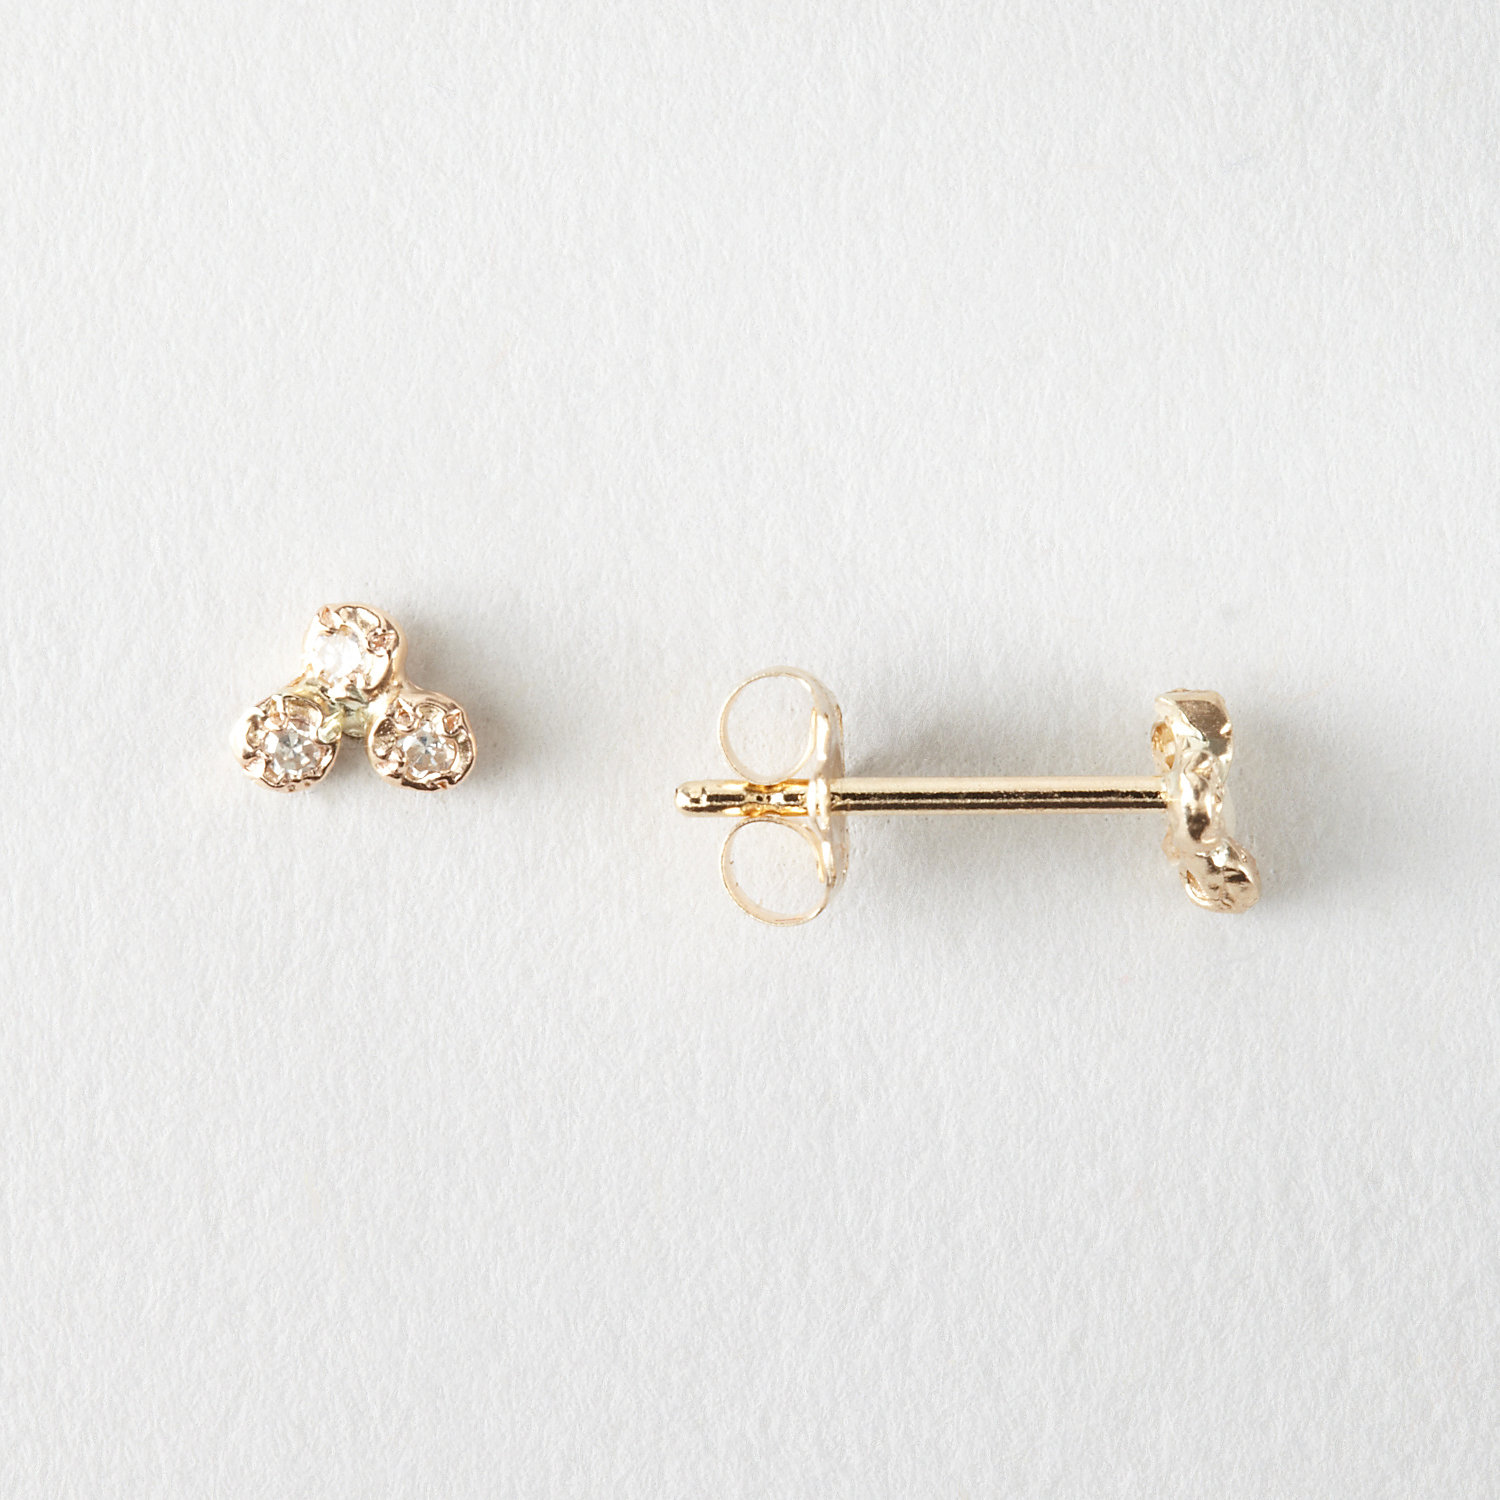 SIX DIAMOND CLUSTER EARRINGS